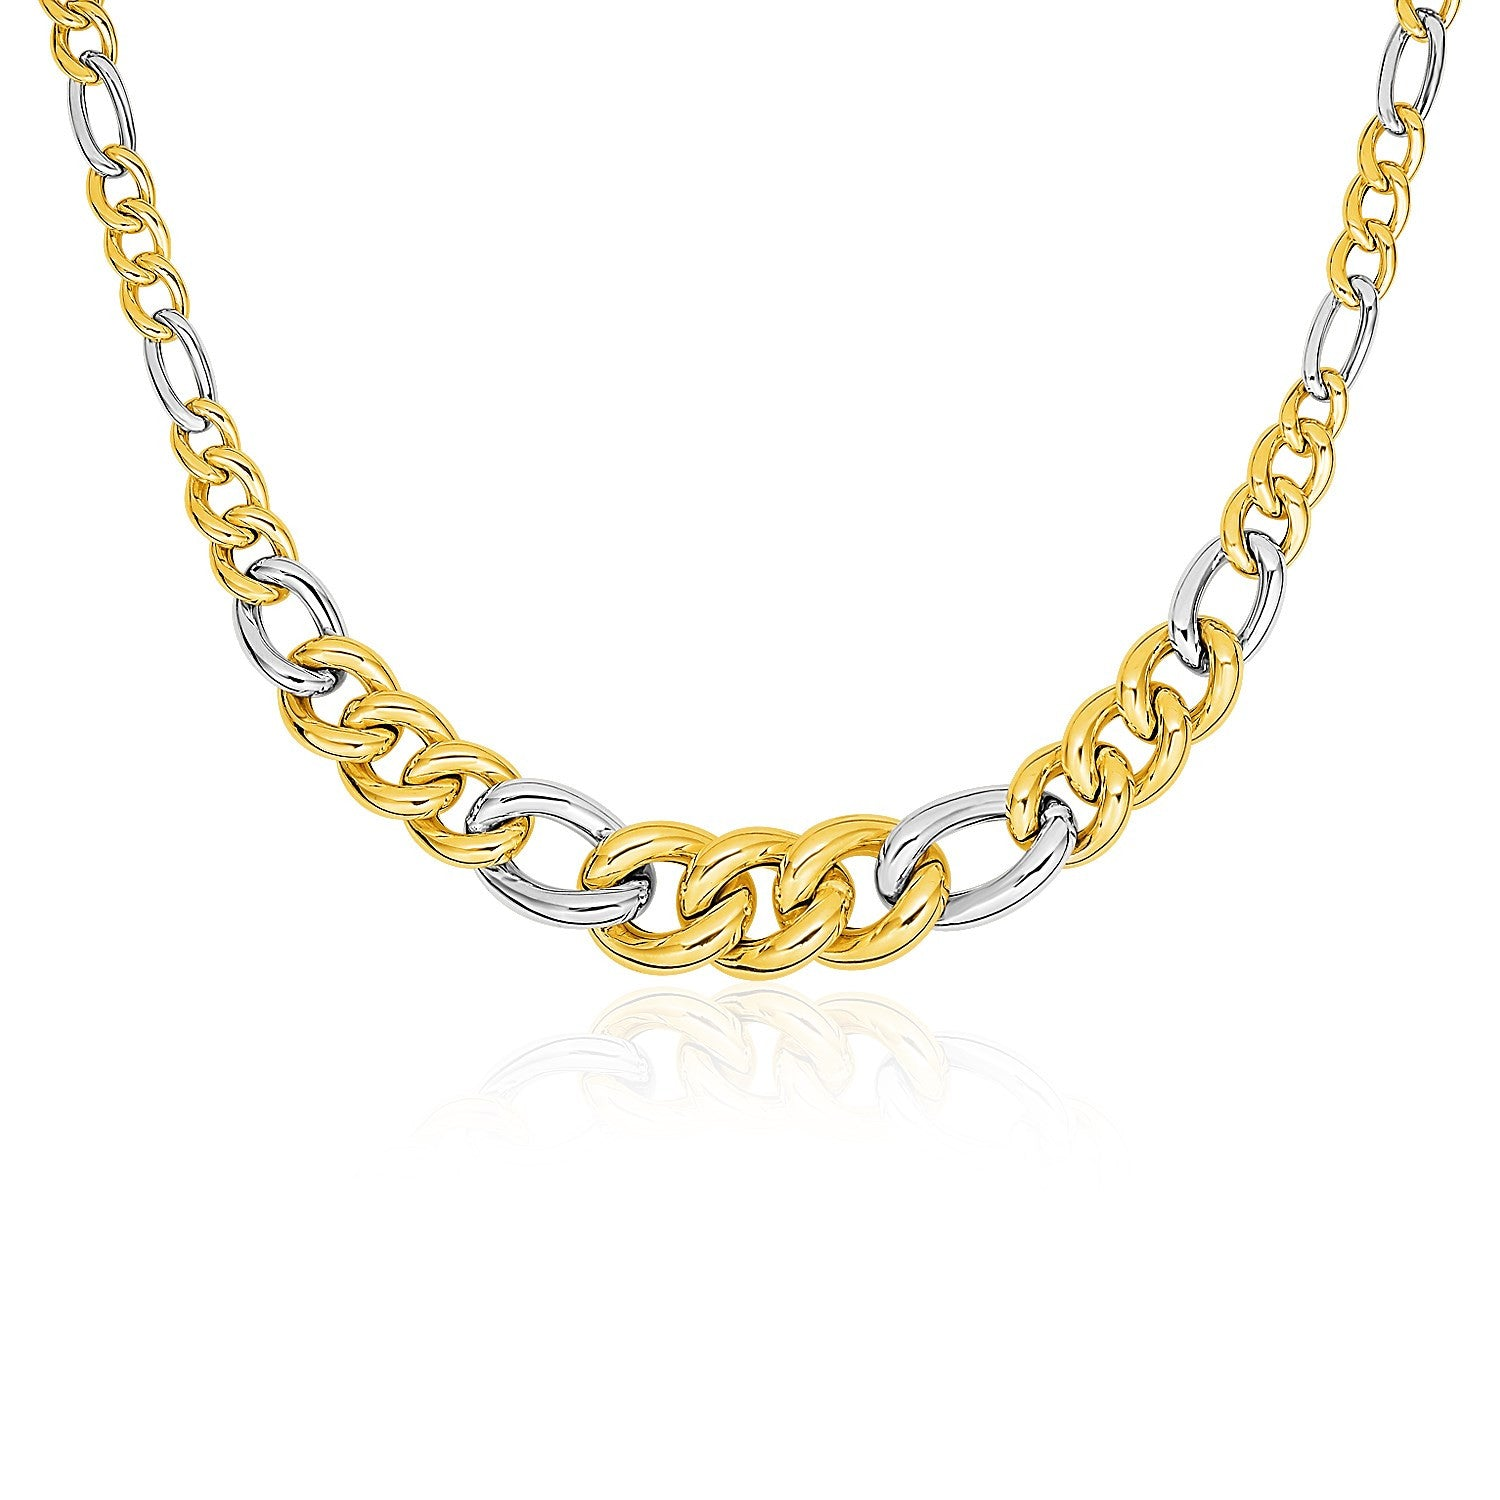 jewellry oval website chain yellow authentic and s co link gold luxury necklace tiffany